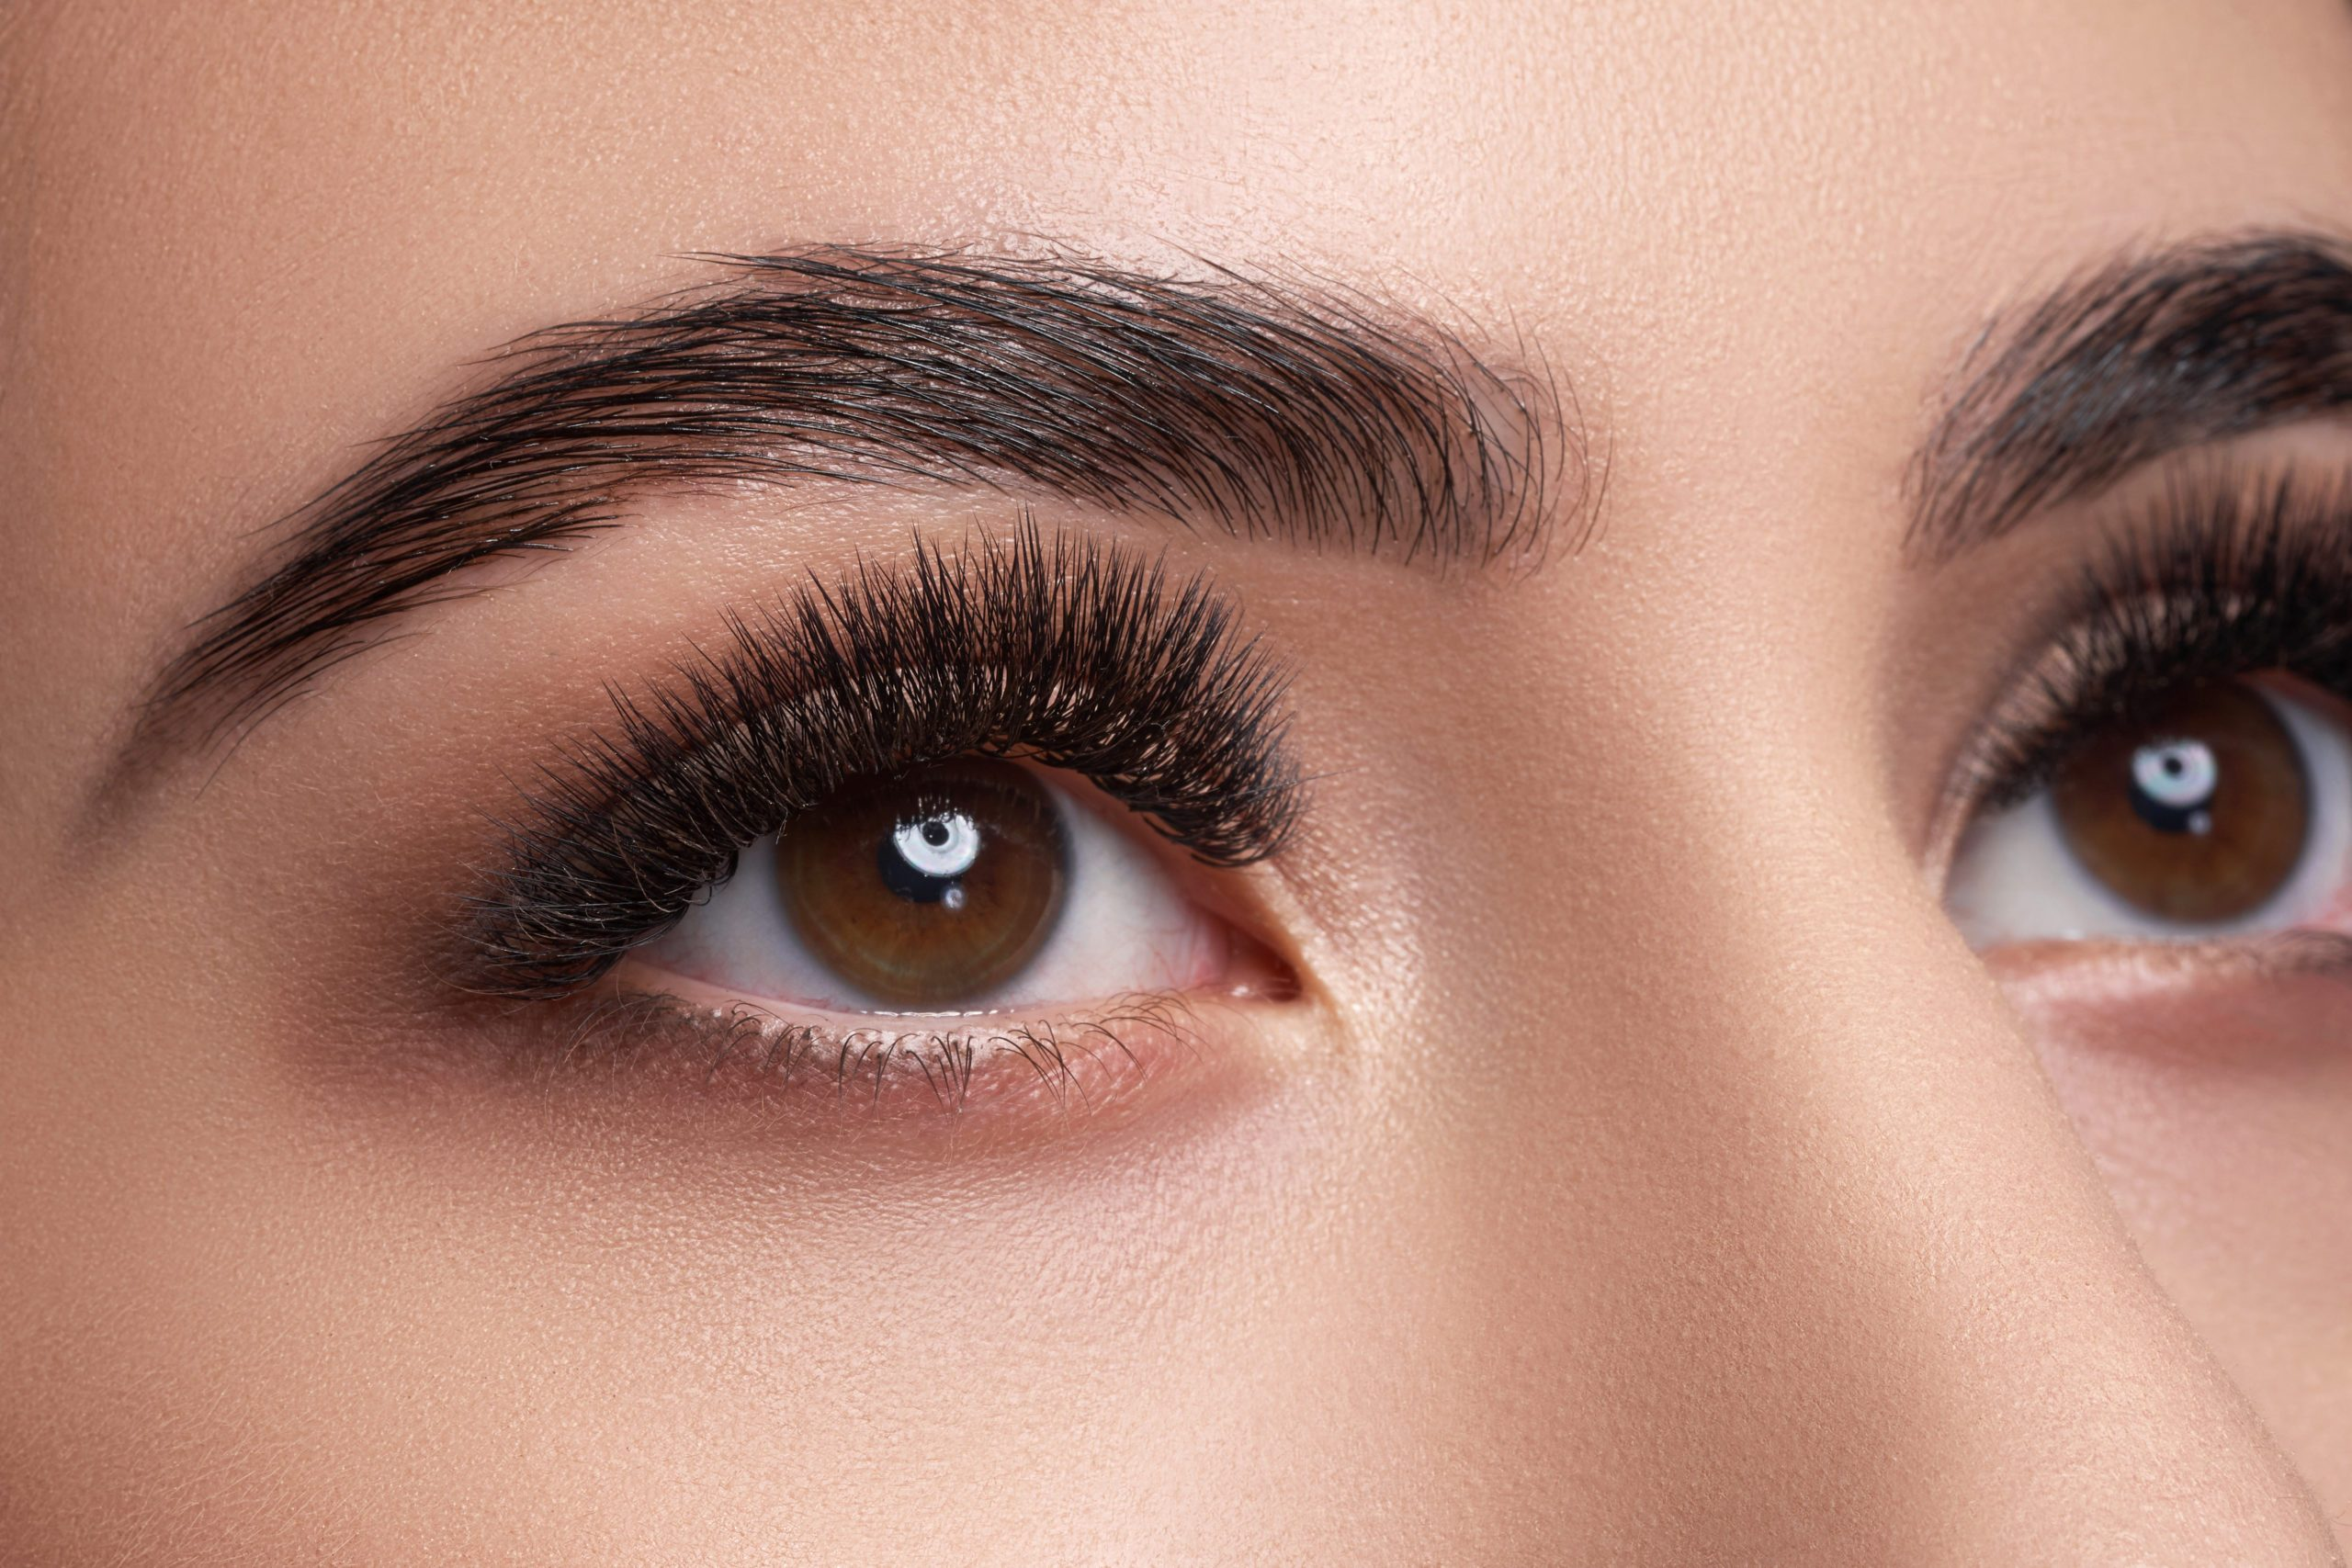 close up of a woman's eye and eyelashes